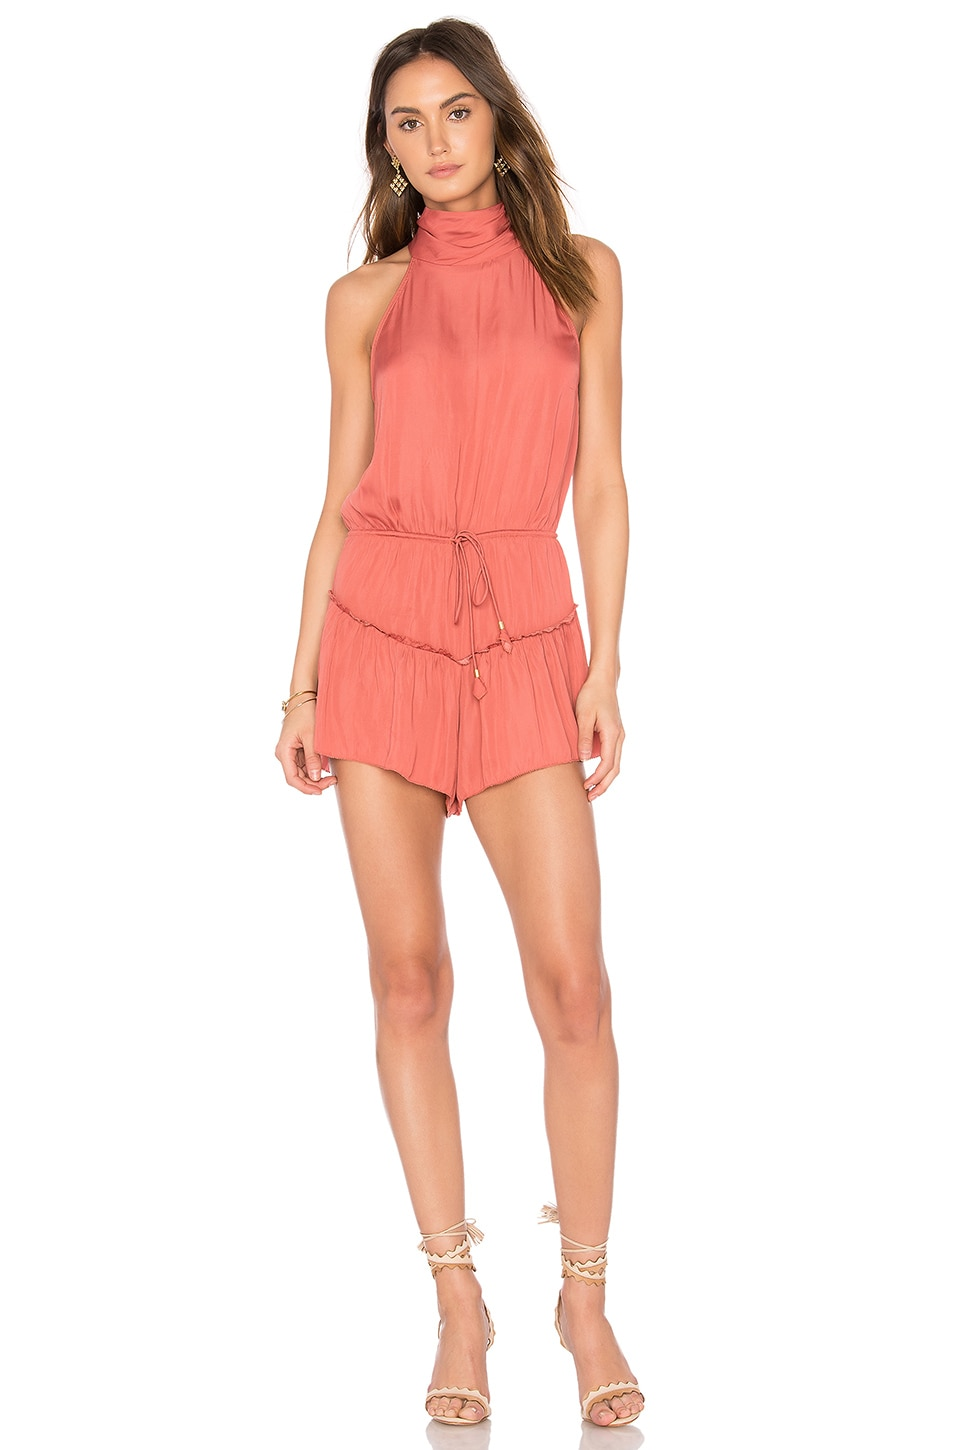 Marigold Romper by Saylor